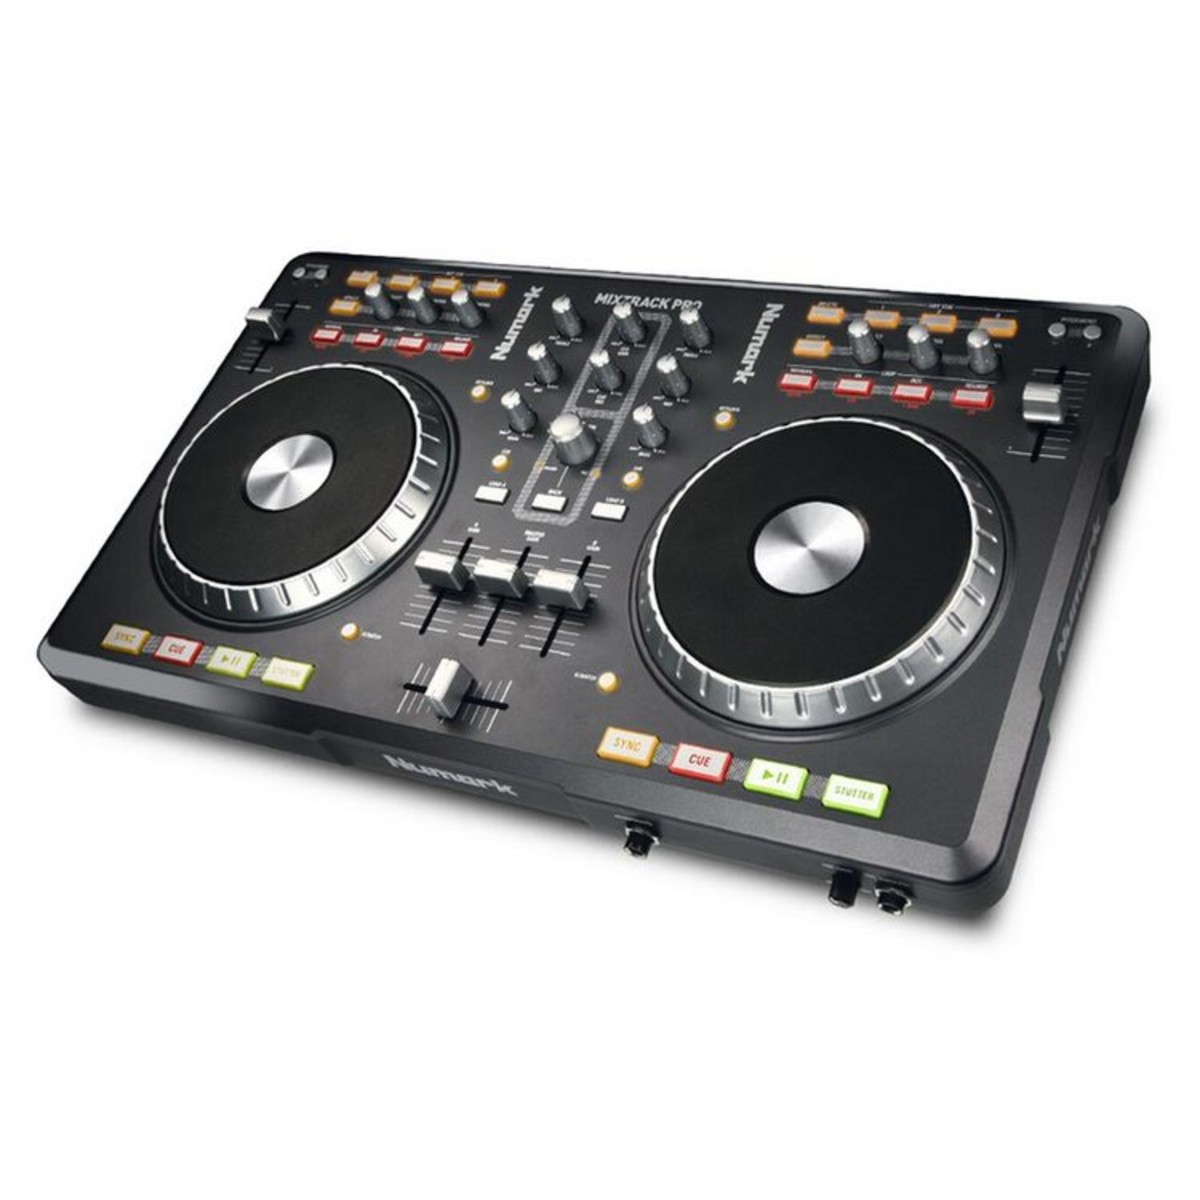 Numark Mixtrack Pro DJ Software Controller - Nearly New